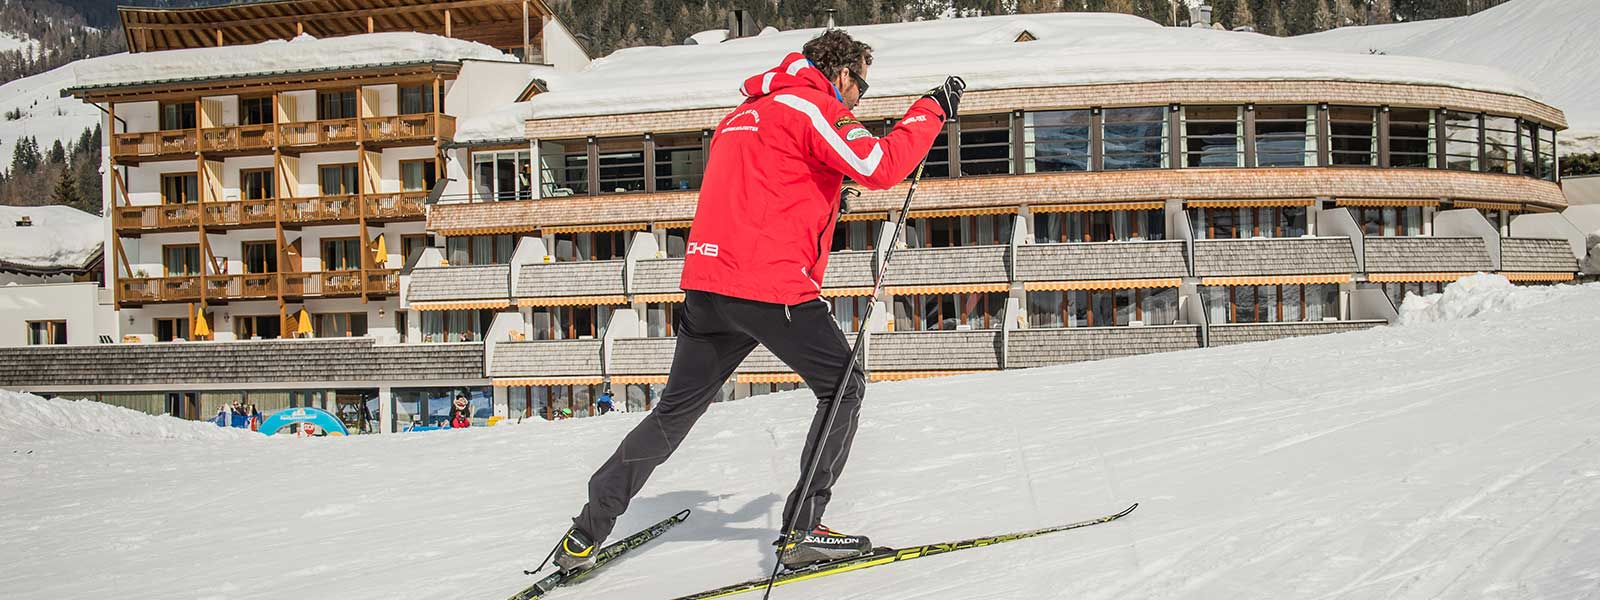 Nordic skiing in Sesto and its surroundings